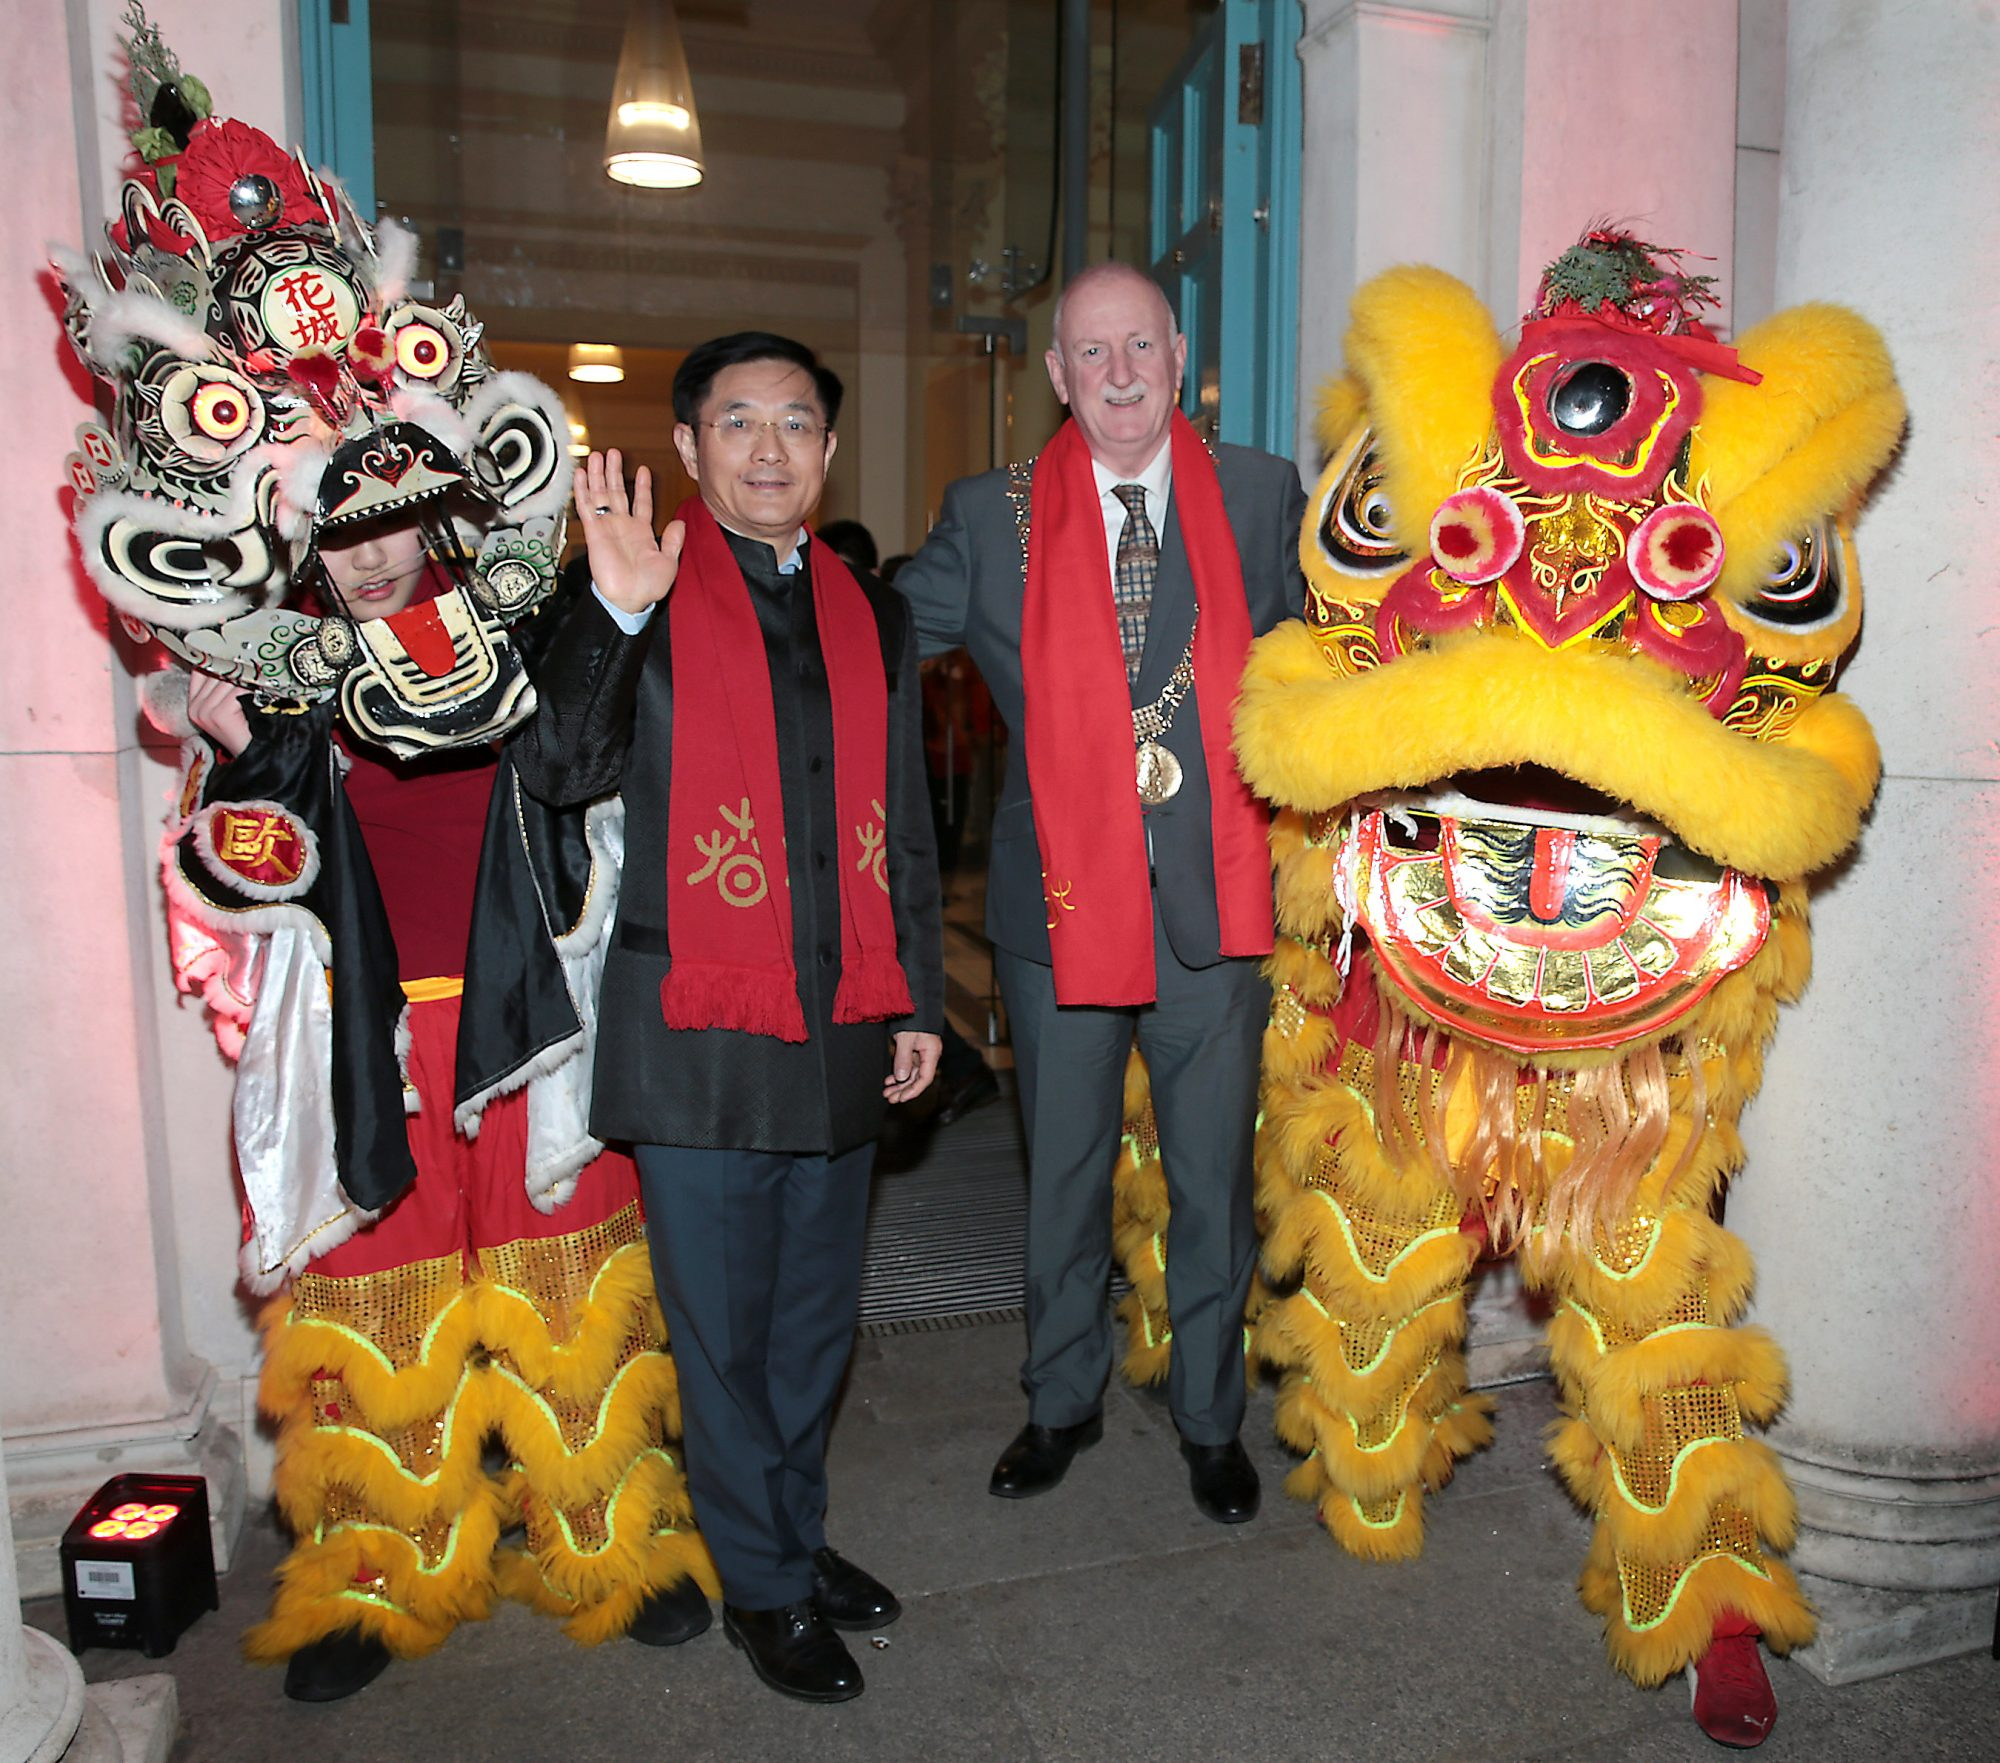 H.E. Dr. Yue Xiaoyong, Chinese Ambassador to Ireland  and Lord Mayor of Dublin Nial Ring pictured at the official opening event of Dublin Chinese New Year Festival 2019 at The Hugh Lane Gallery sponsored by Kildare Village. Dublin Chinese New Year Festival runs until 17th February for more see www.dublinchinesenewyear.com   DCNYF celebrates the Year of the Pig this year, completing a full cycle of the zodiac for the festival, which has grown to become one of the biggest celebrations of Chinese New Year in Europe. A Dublin City Council initiative, the festival aims to develop and showcase the best of Sino-Hibernian culture in Ireland and is jam-packed with many ticketed and free events for everyone to enjoy.  Picture Brian McEvoy